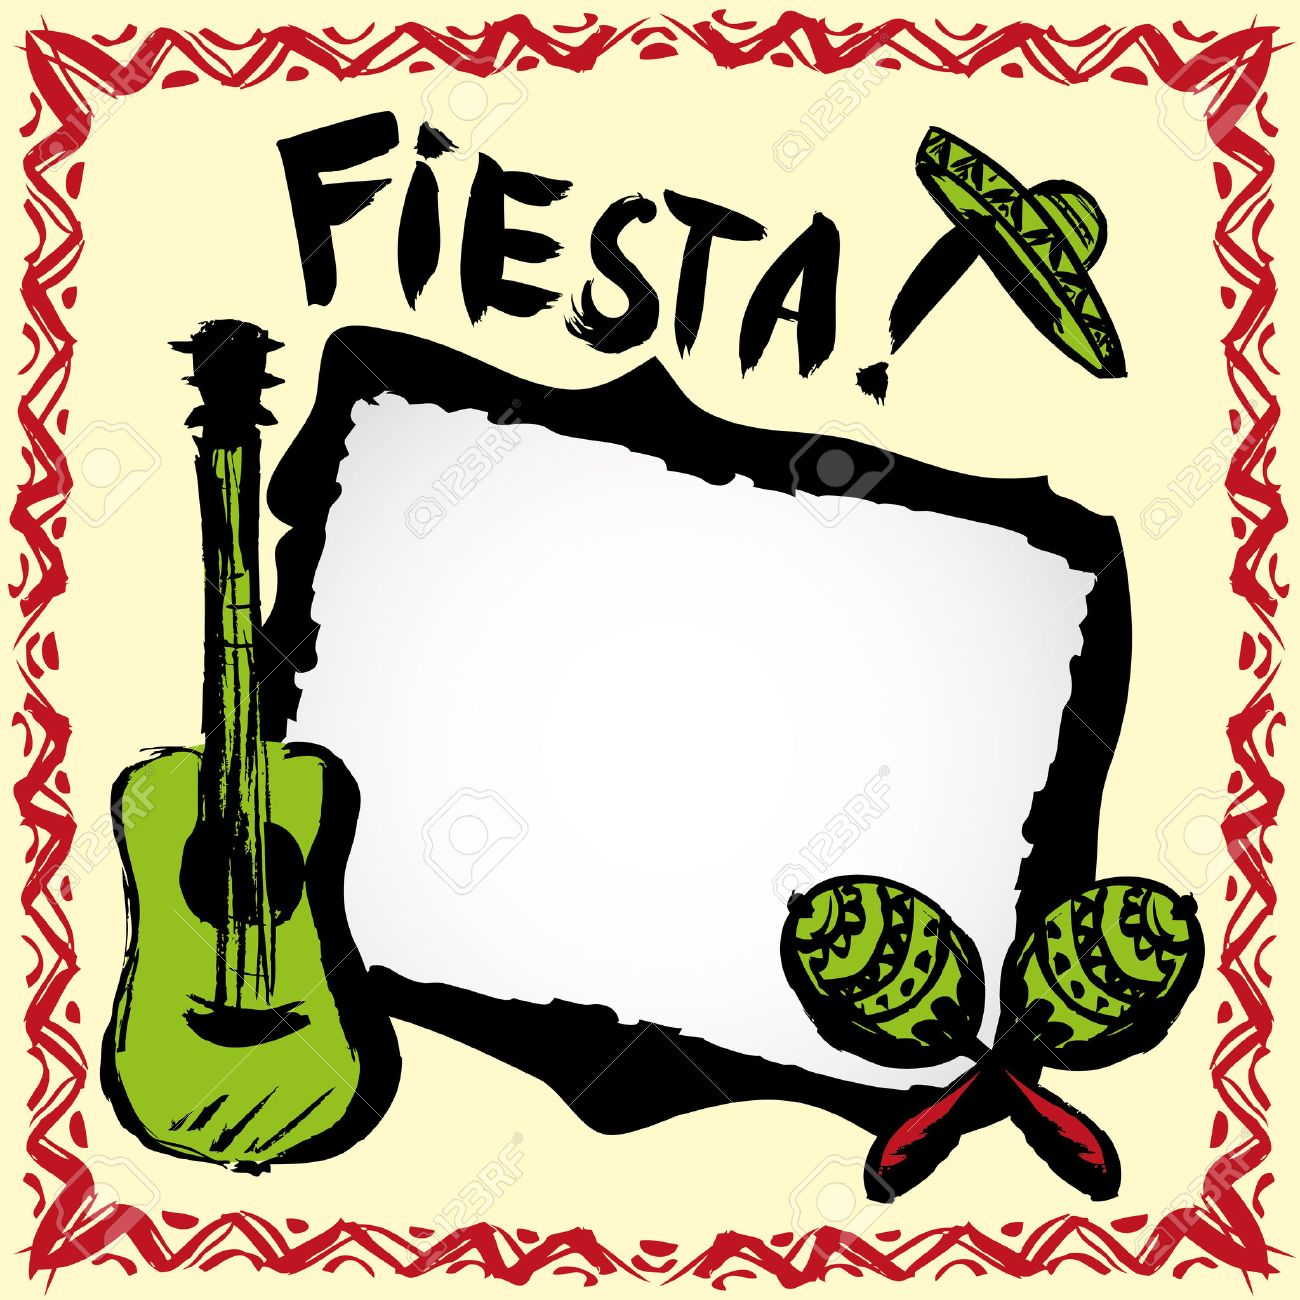 Mexican Fiesta Frame With Sombrero\'s,maracas And Guitar, Hand ...